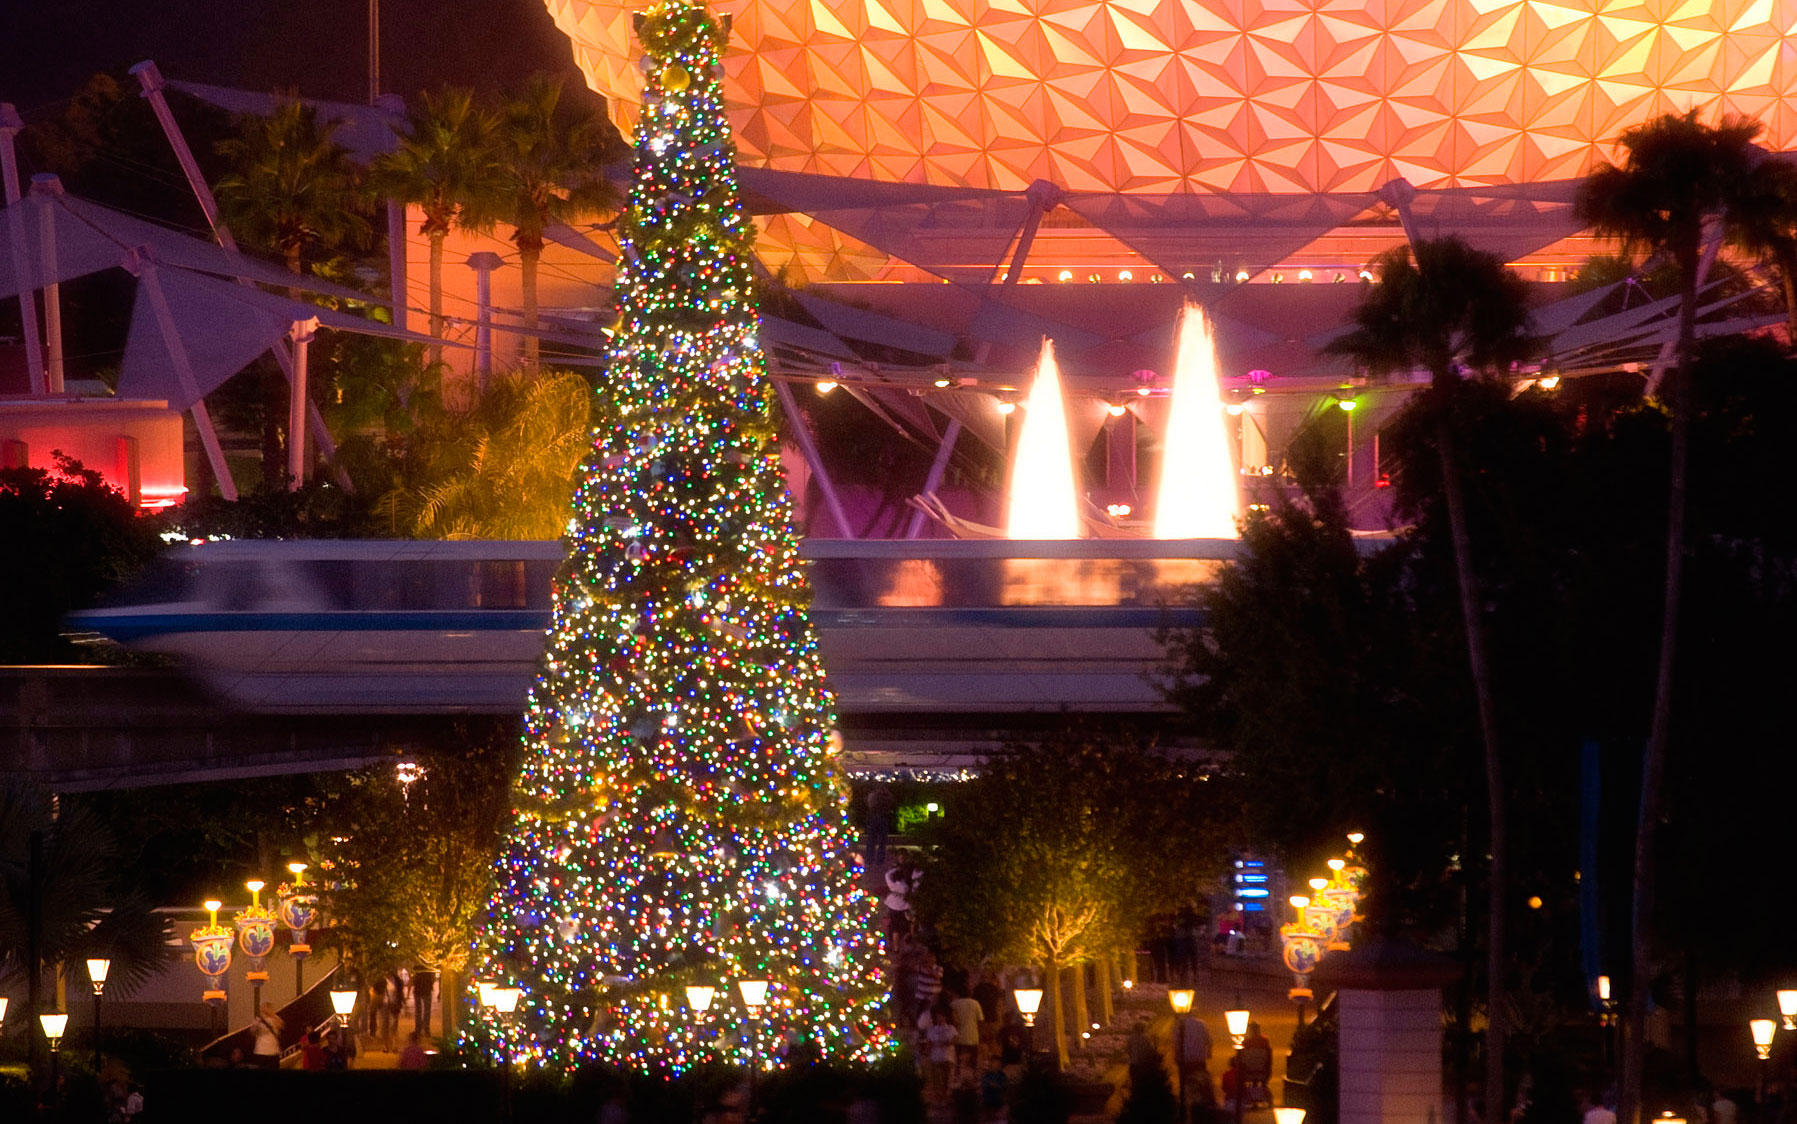 Disney Christmas Travel Tips: Sneak a Glimpse Behind the Scenes